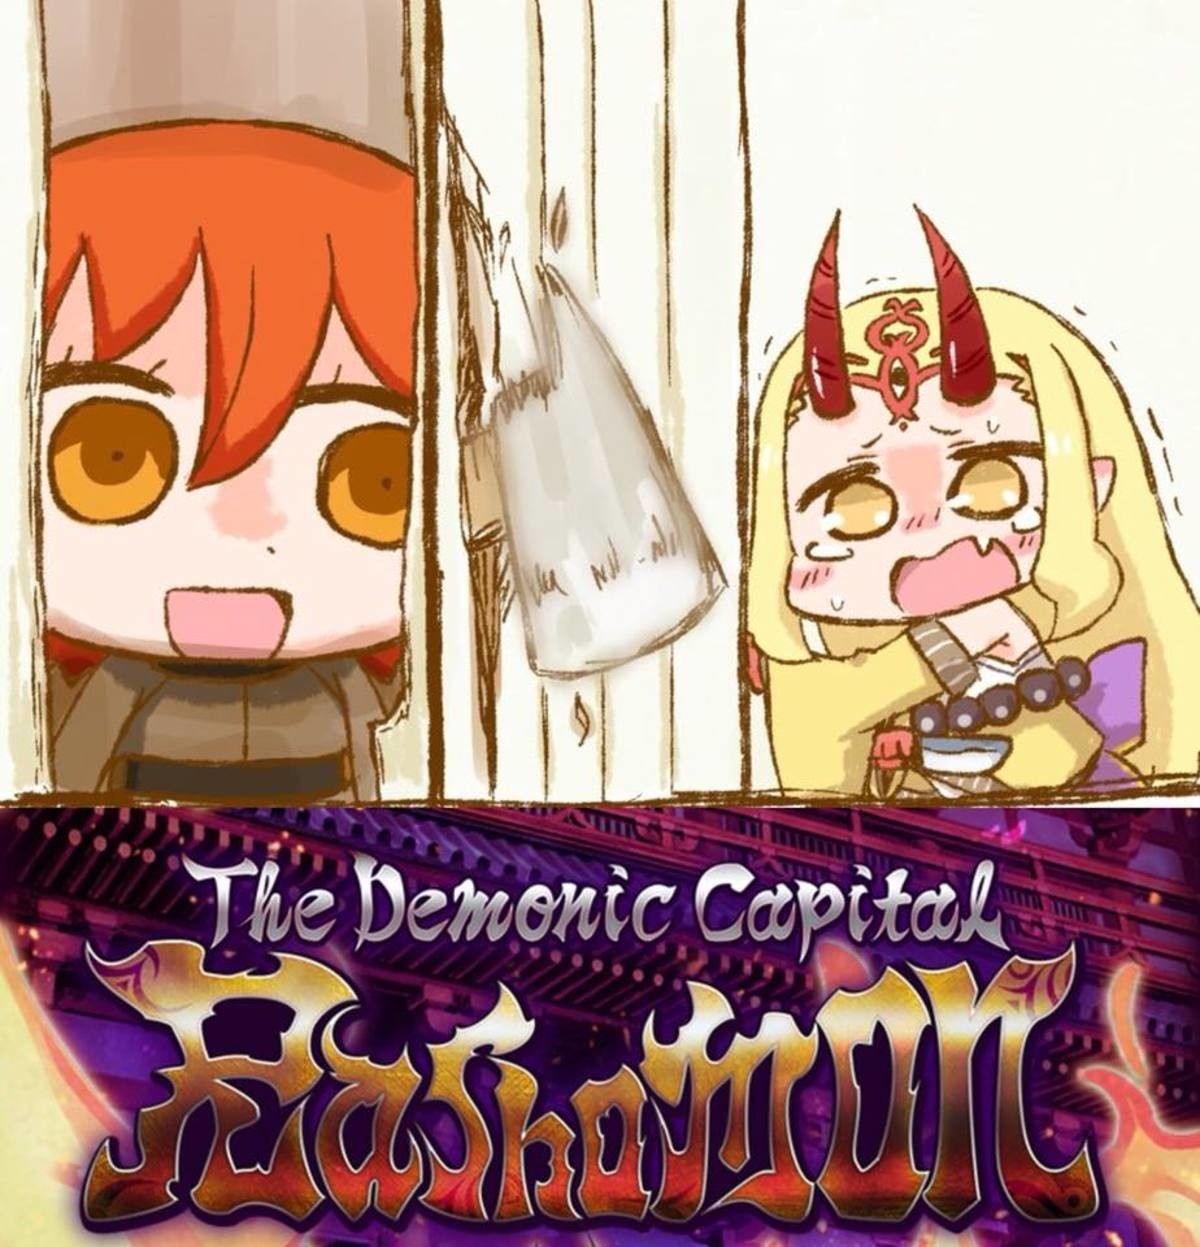 ITS TIME TO BULLI THE BANANA ONI. https://twitter.com/neko_yama/status/870789396676567040?s=21 join list: SmolHol (1445 subs)Mention History join list:. she got 3 trillion HP, she needs to be bullied.